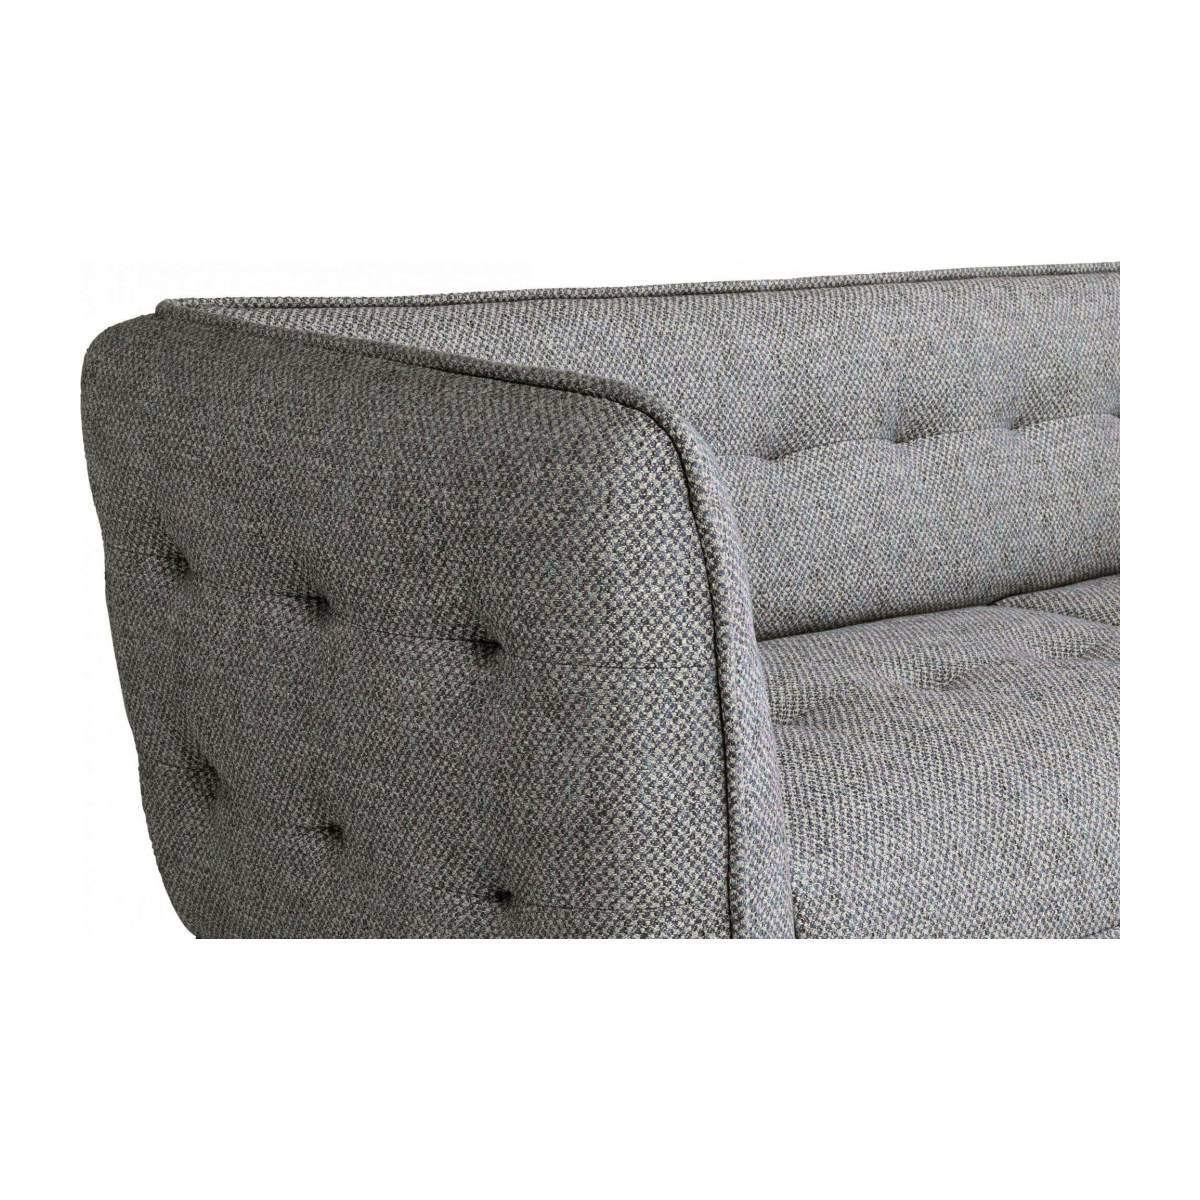 3 seater sofa in Bellagio fabric, night black and oak legs n°5